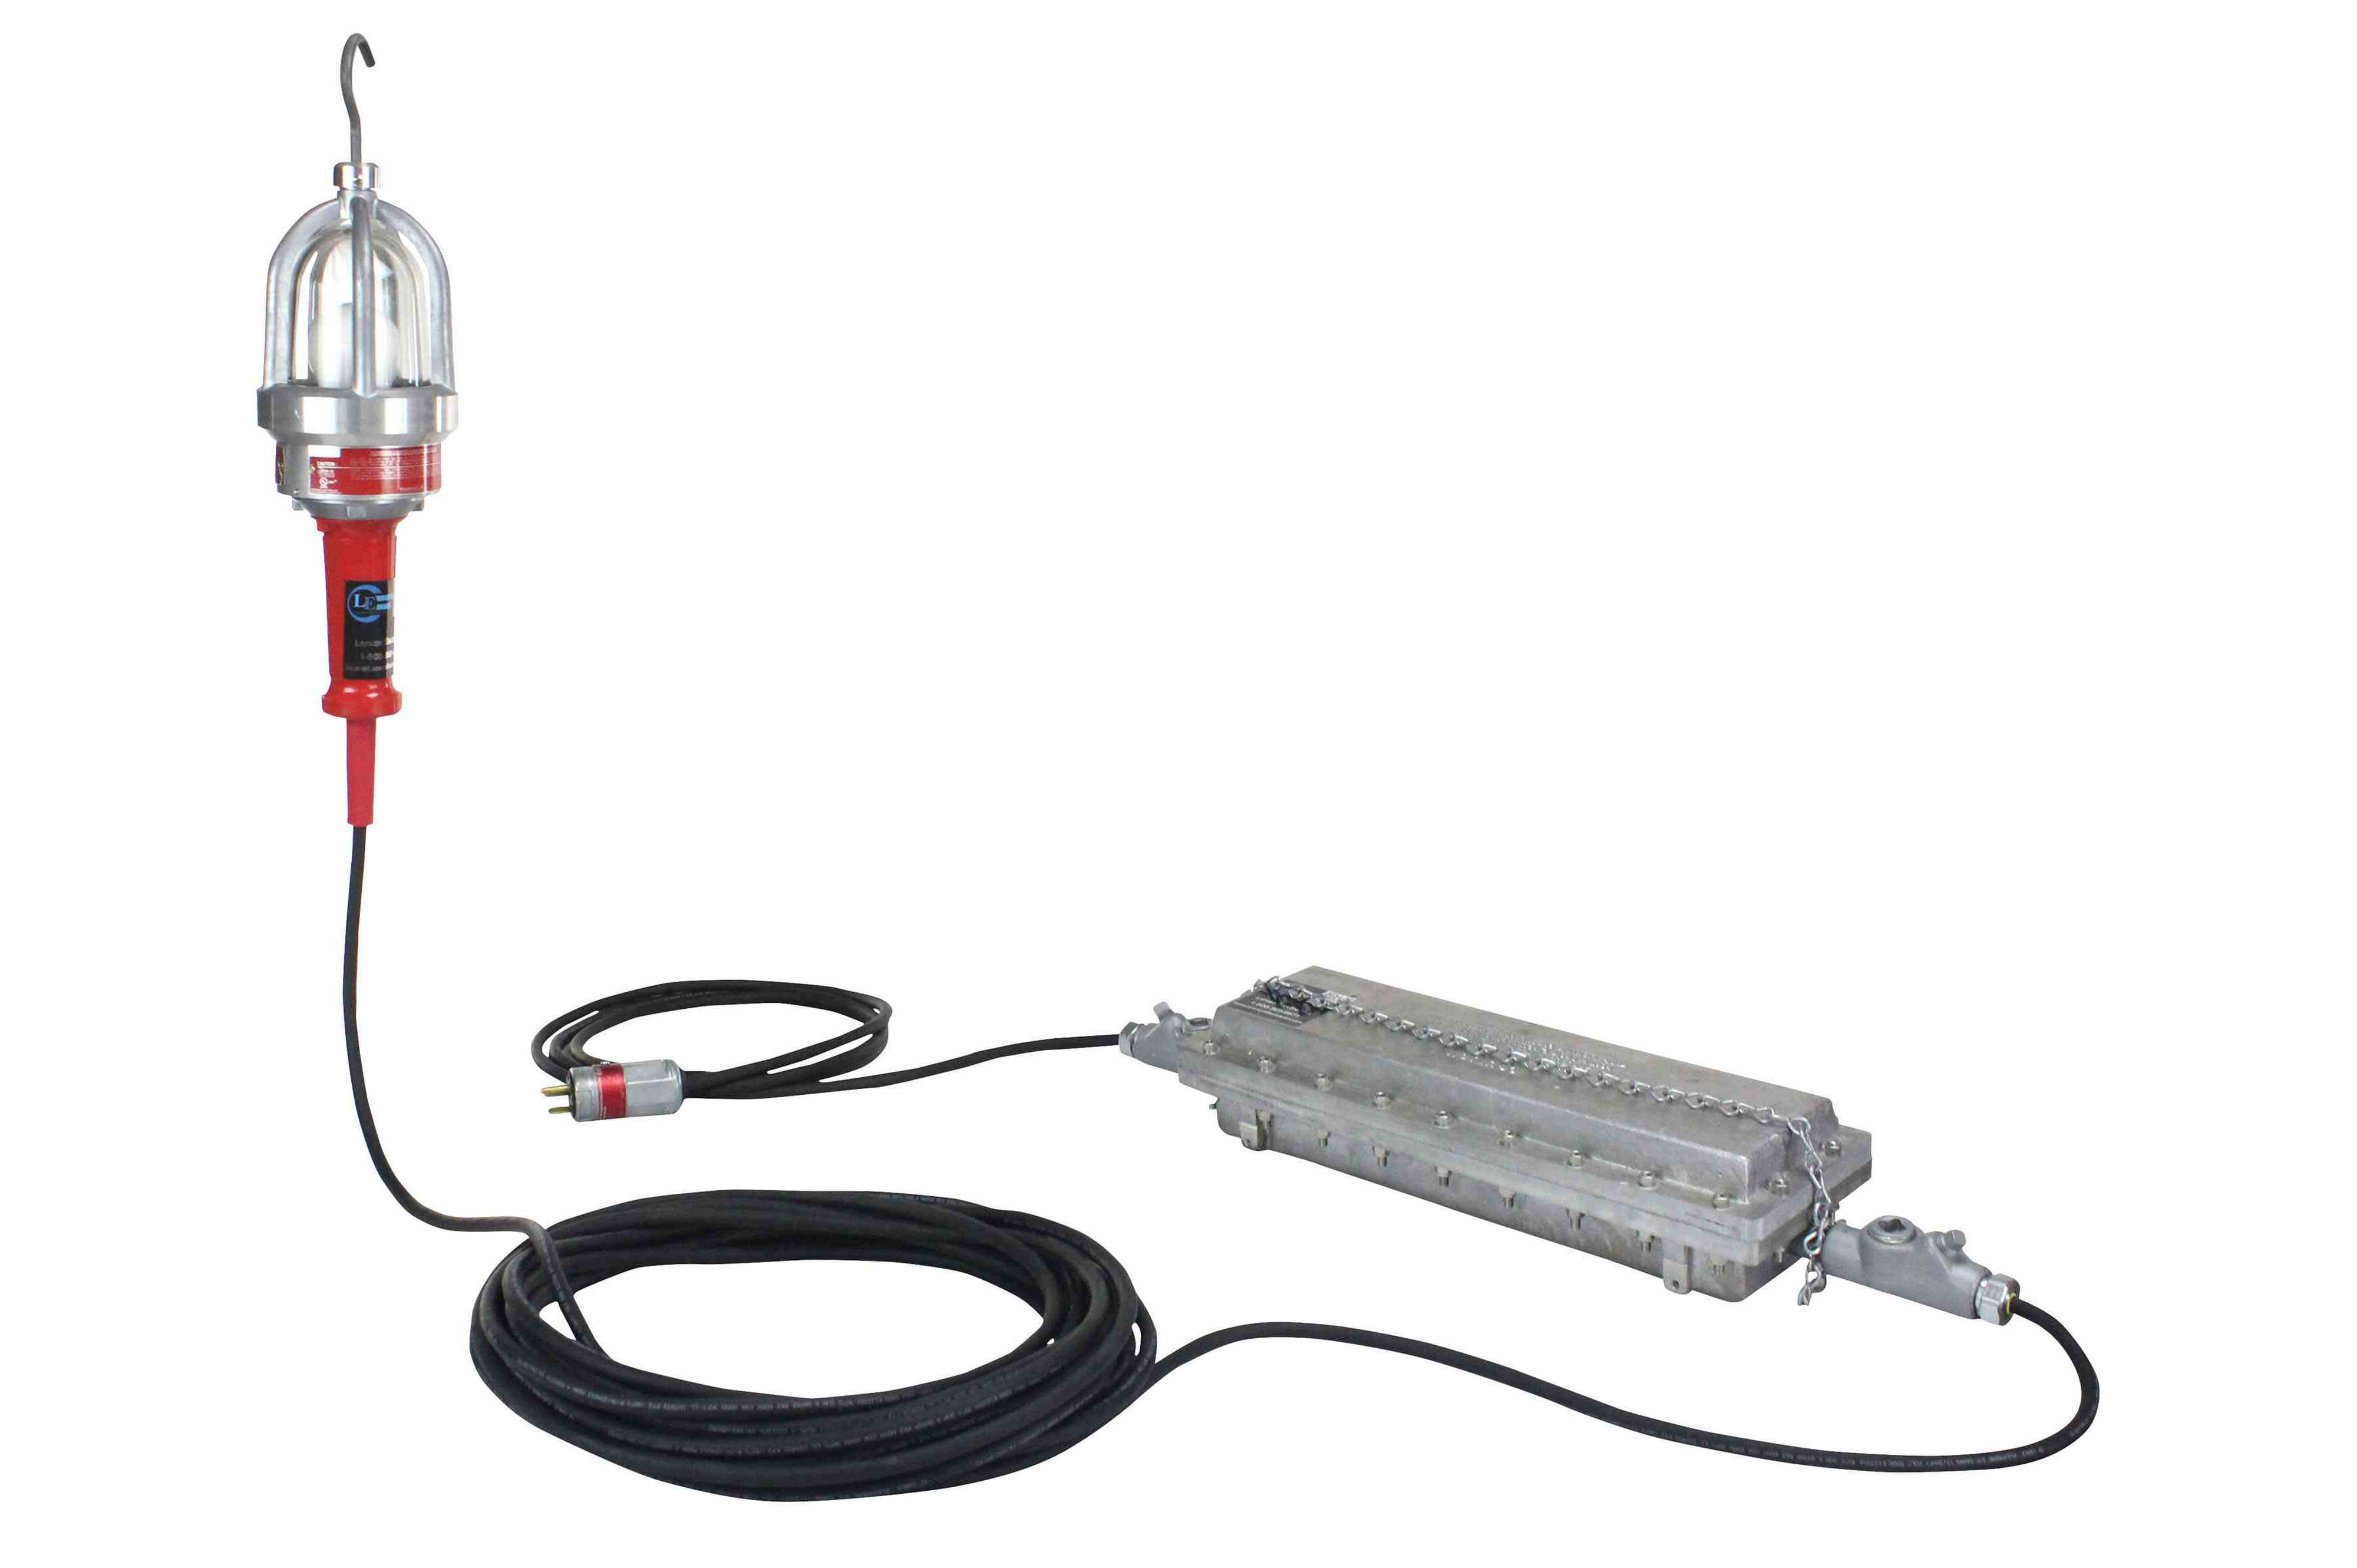 Explosion Proof Drop Light Hand Lamp With C1d1 Inline